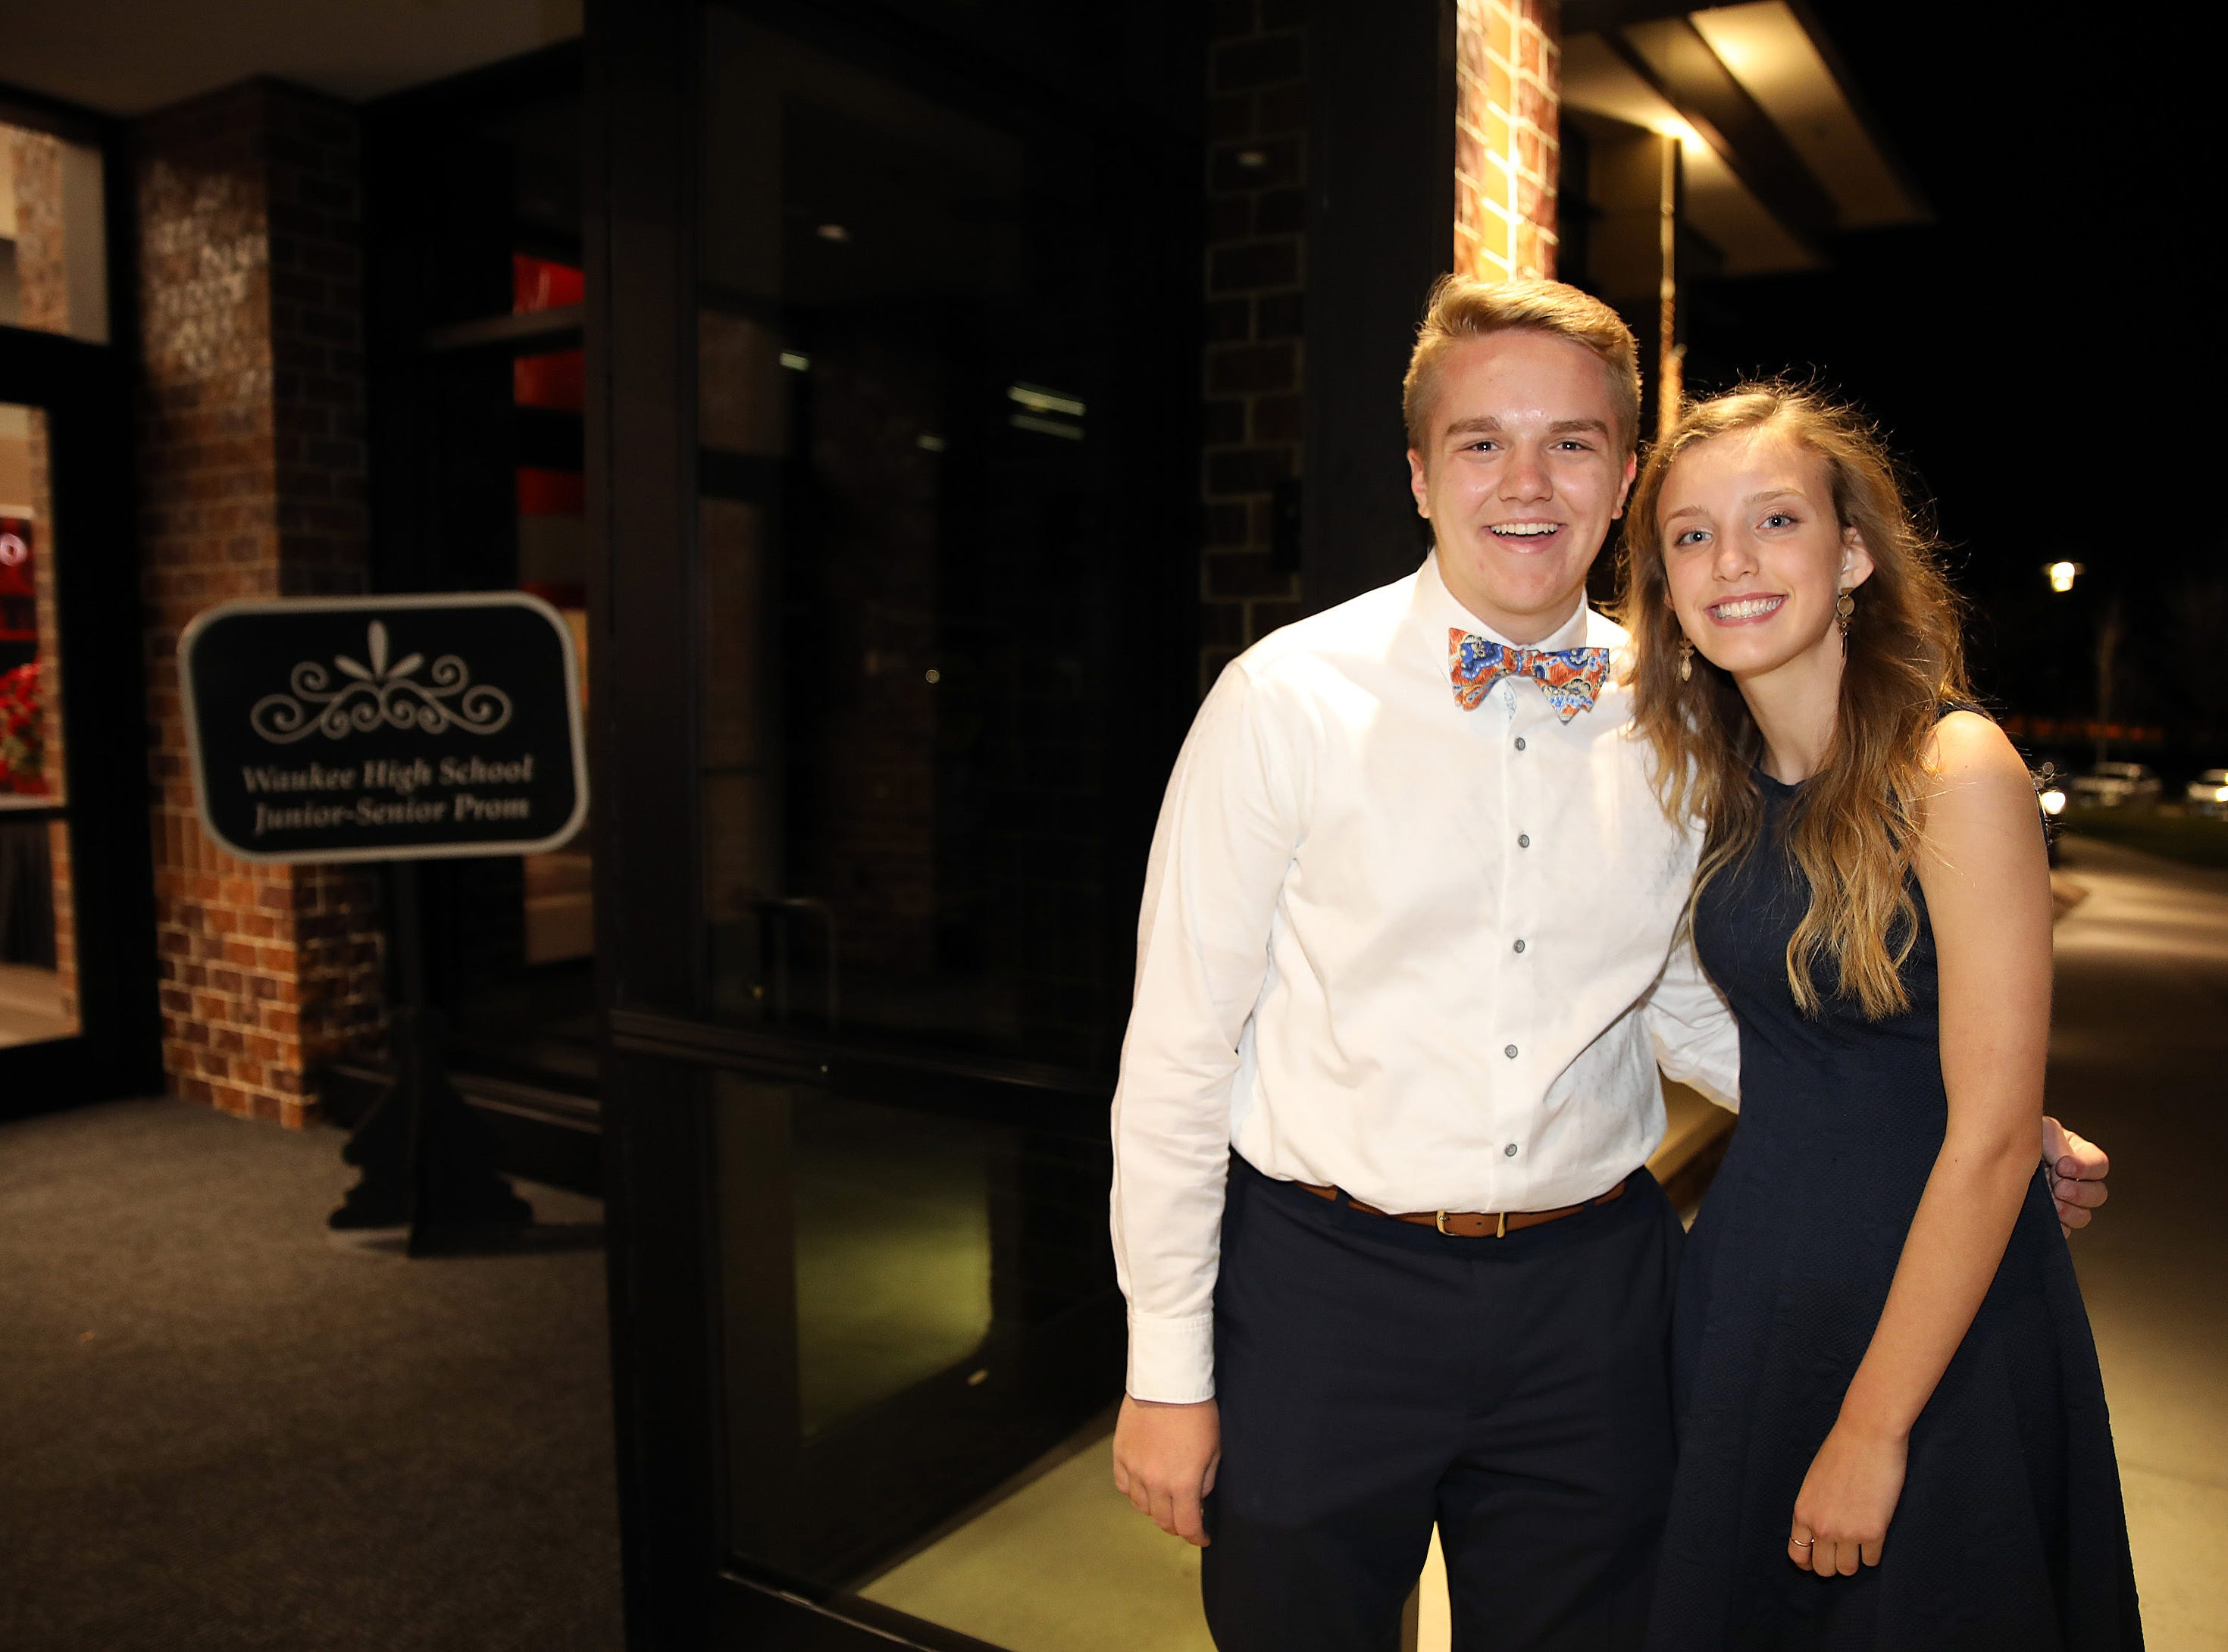 Sophomore greeters Will Reiser and Abby Cook welcome their fellow classmates to the Waukee High School Junior/Senior Prom at the Ron Pearson Center in West Des Moines on Saturday, April 6, 2019.